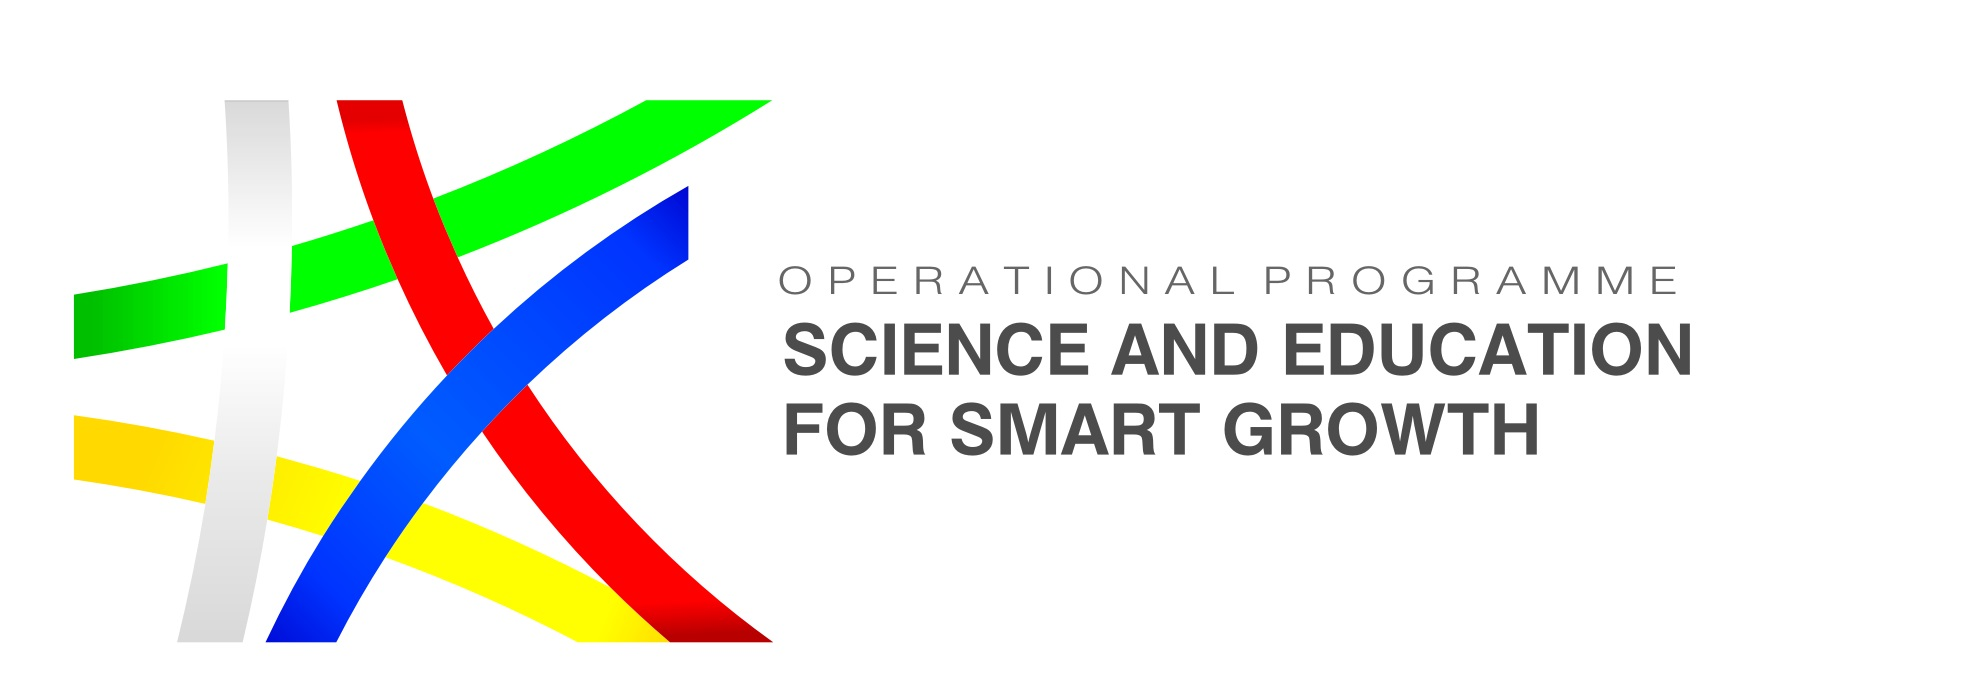 Operational Science and Education Program